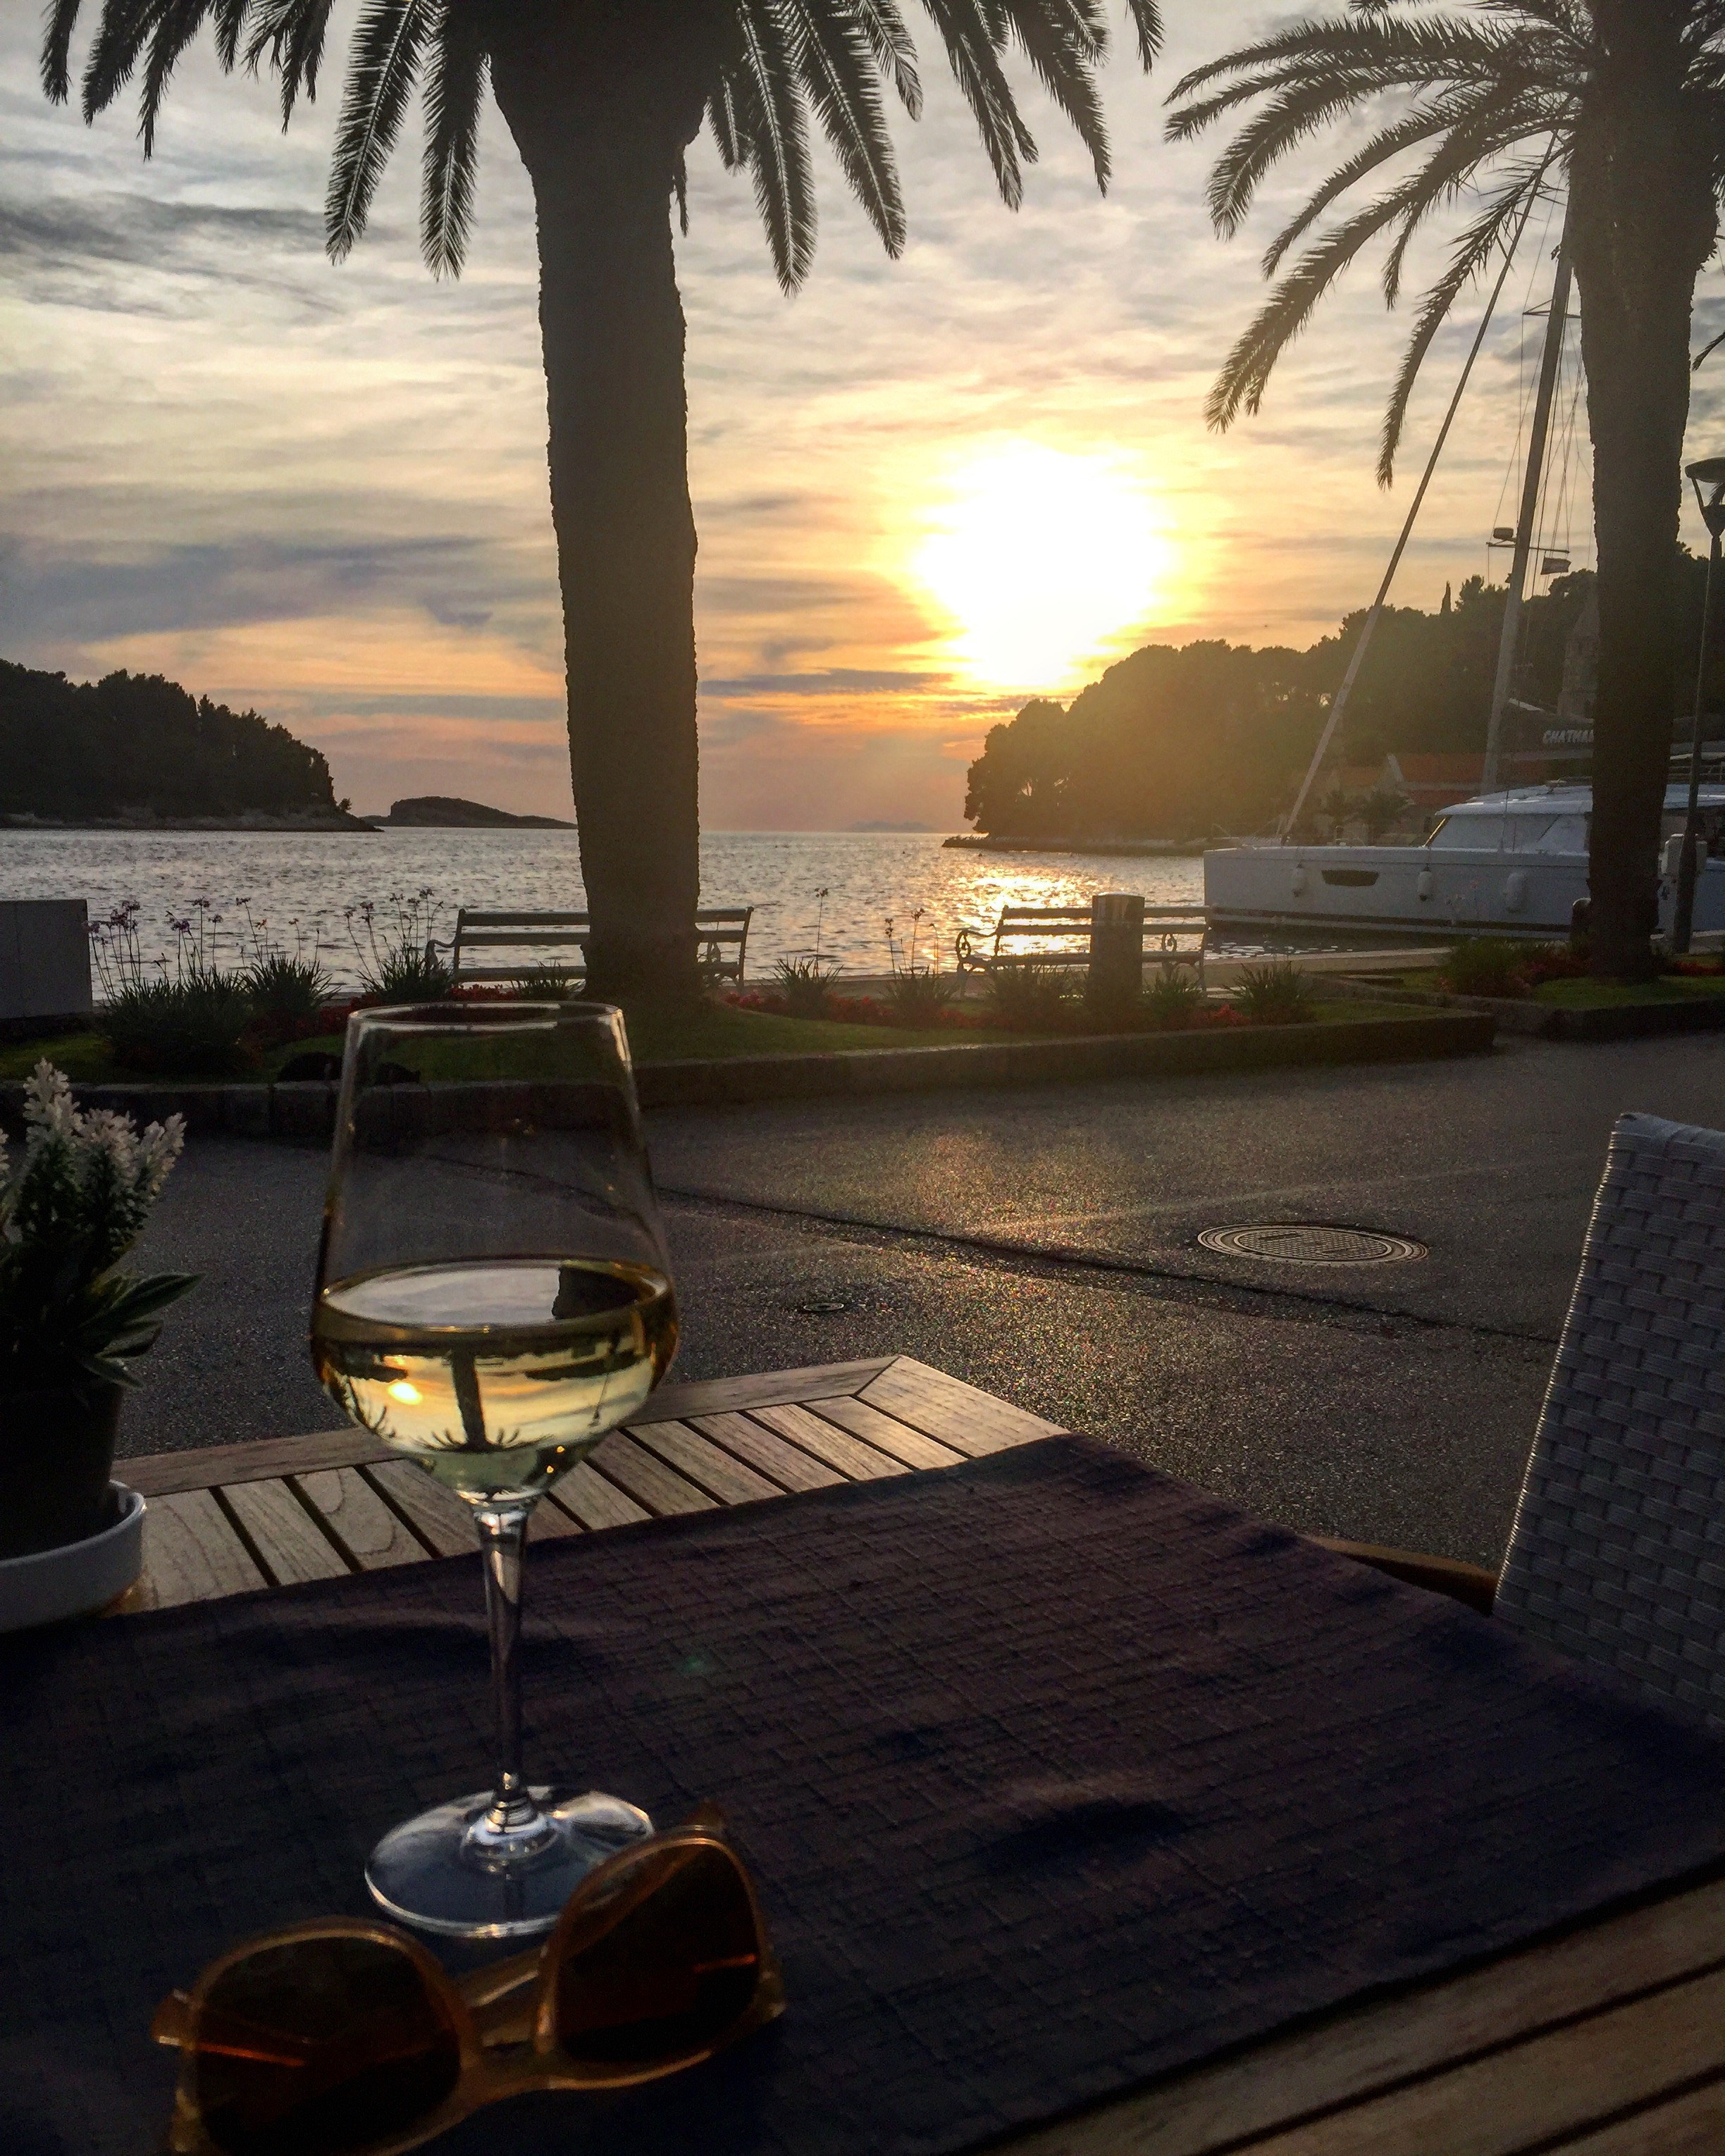 Wine for one with a side of sunset. Cavtat, Croatia.